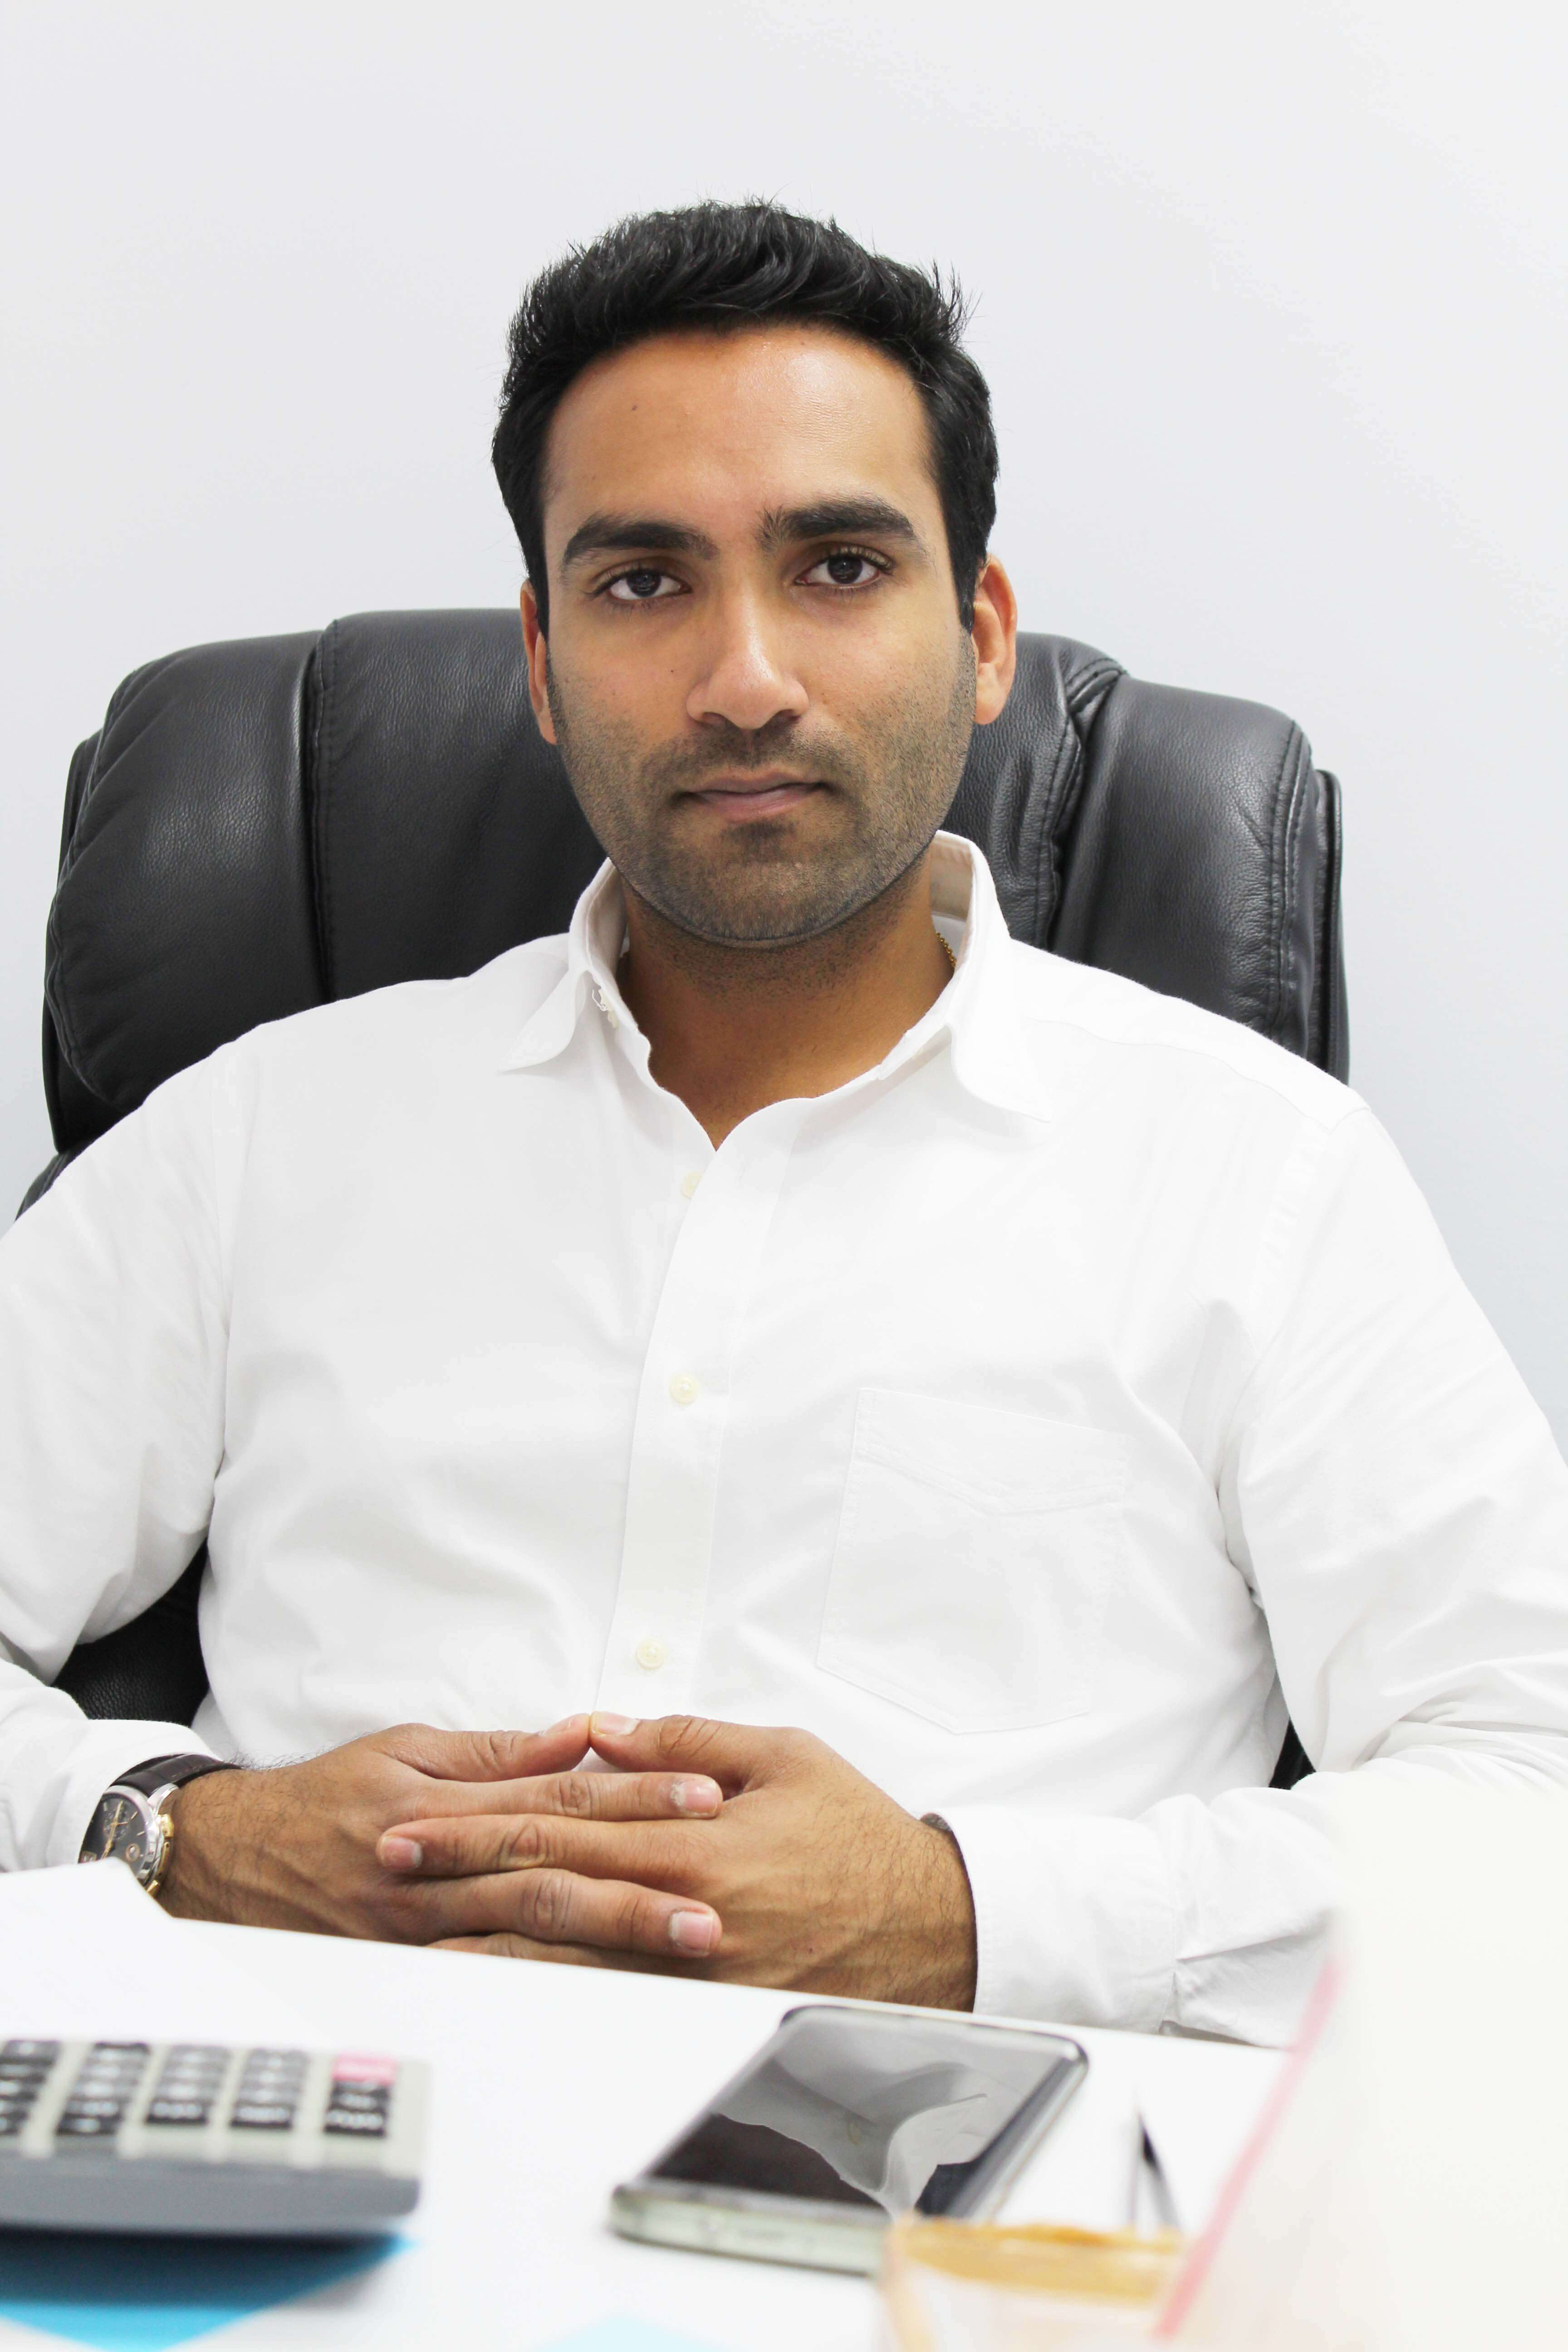 Puneet Agrawal, CEO/Co-Founder